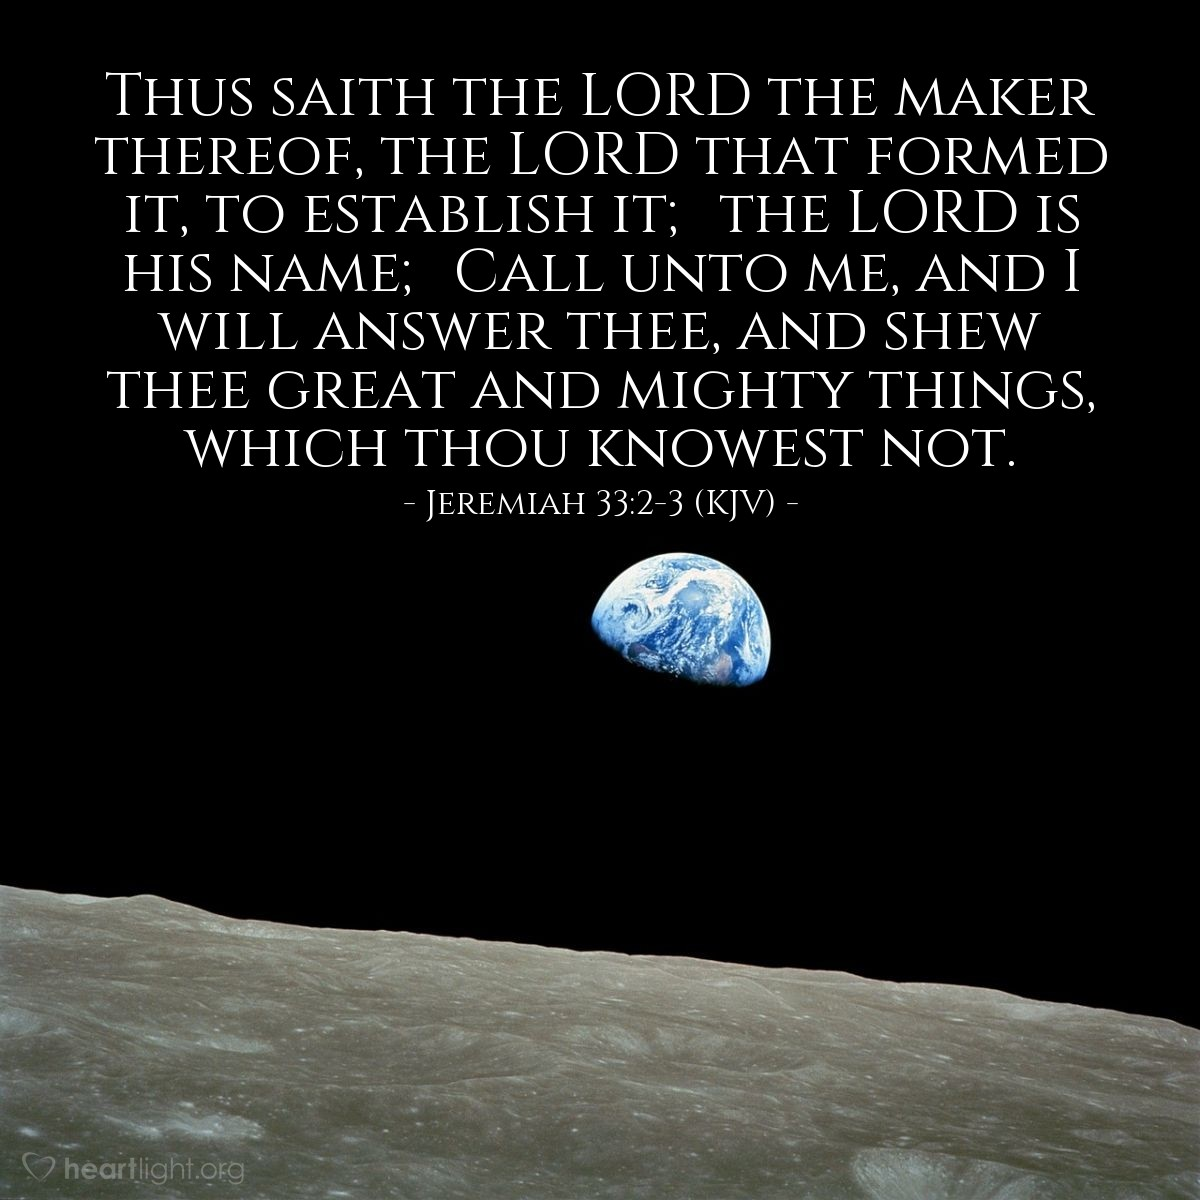 Illustration of Jeremiah 33:2-3 (KJV) — Thus saith the LORD the maker thereof, the LORD that formed it, to establish it; the LORD is his name; Call unto me, and I will answer thee, and shew thee great and mighty things, which thou knowest not.